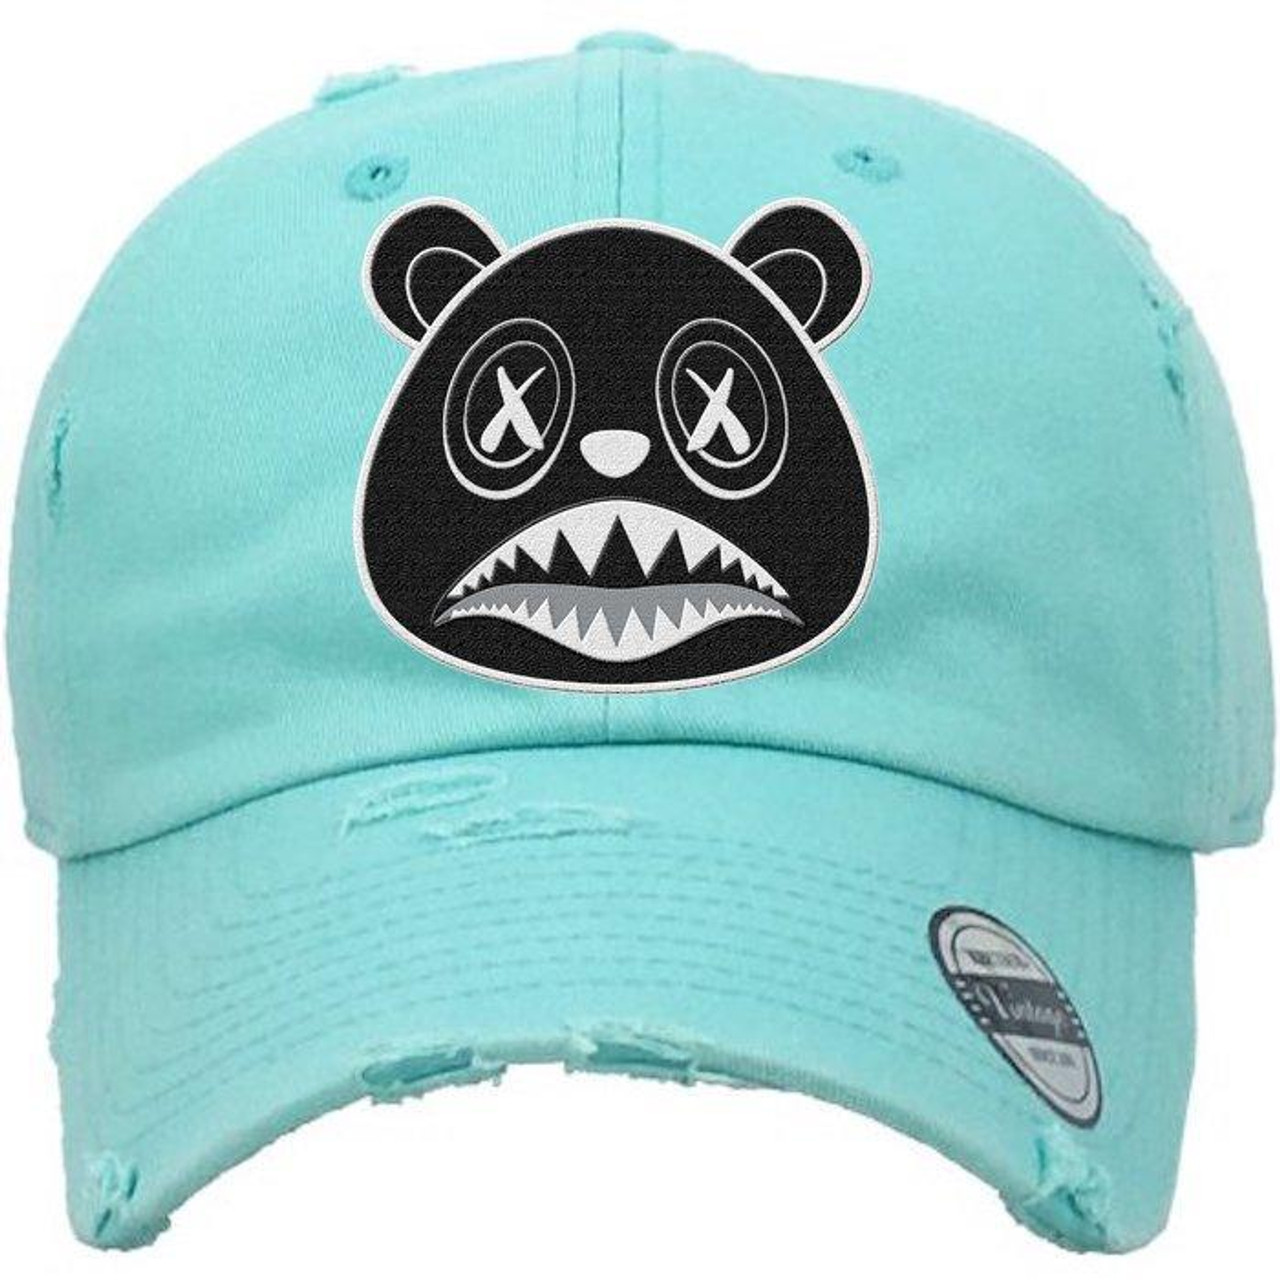 5b46bef7bac BAWS Bear Black Logo Mint Green Dad Hat - KCT Streetwear - OFFICAL ...